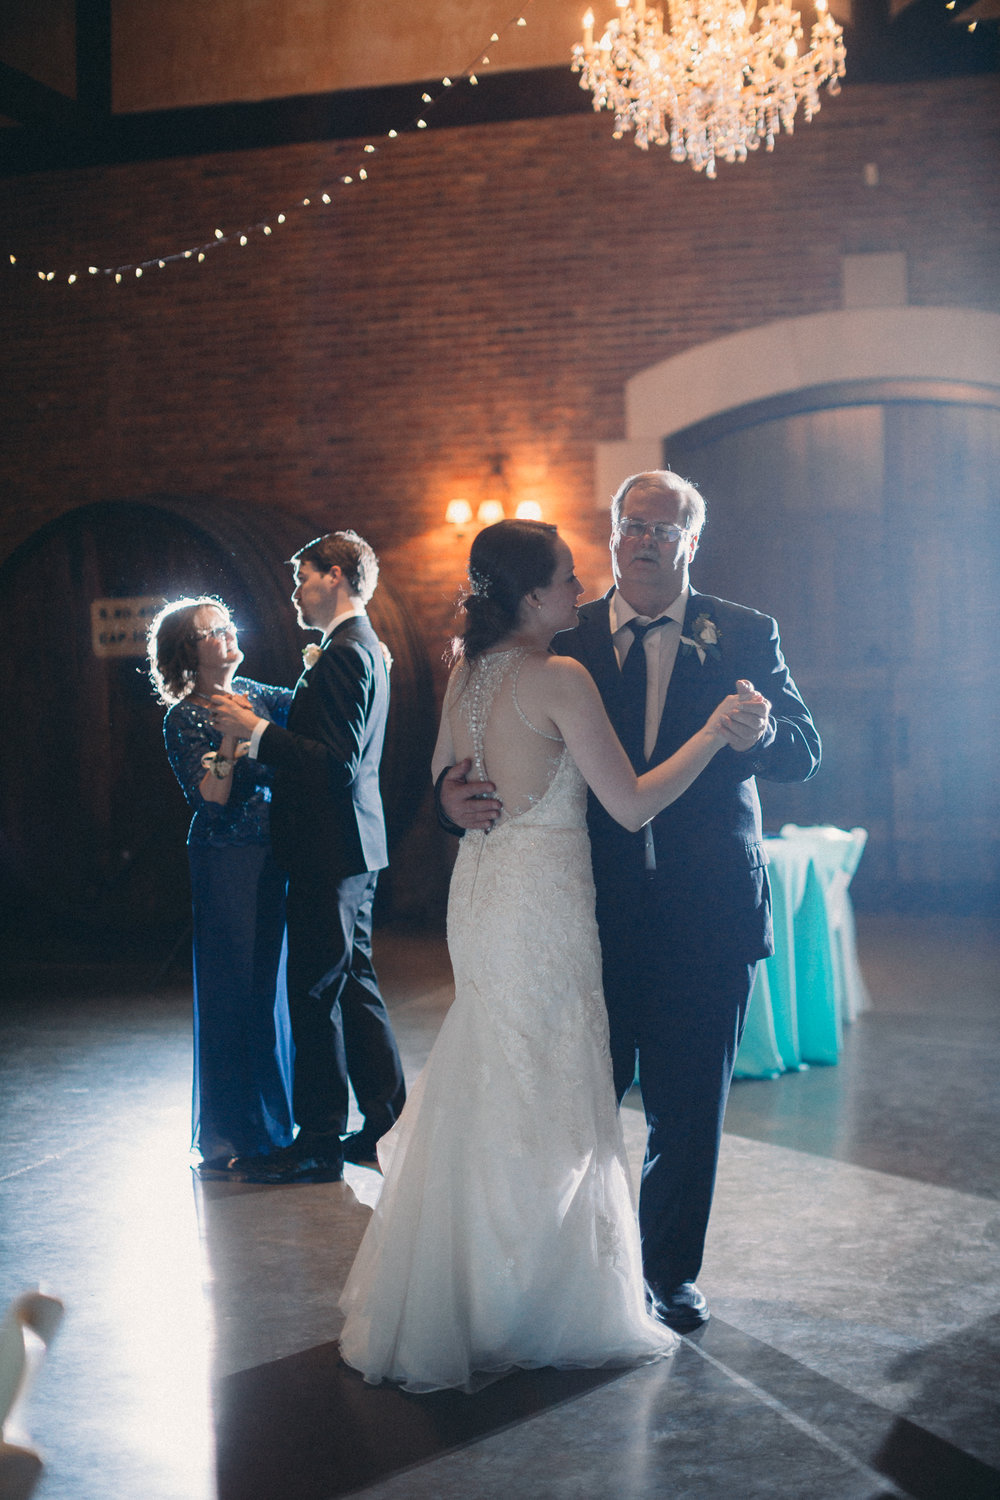 AEphotography_Lindsey+Greame-49.jpg